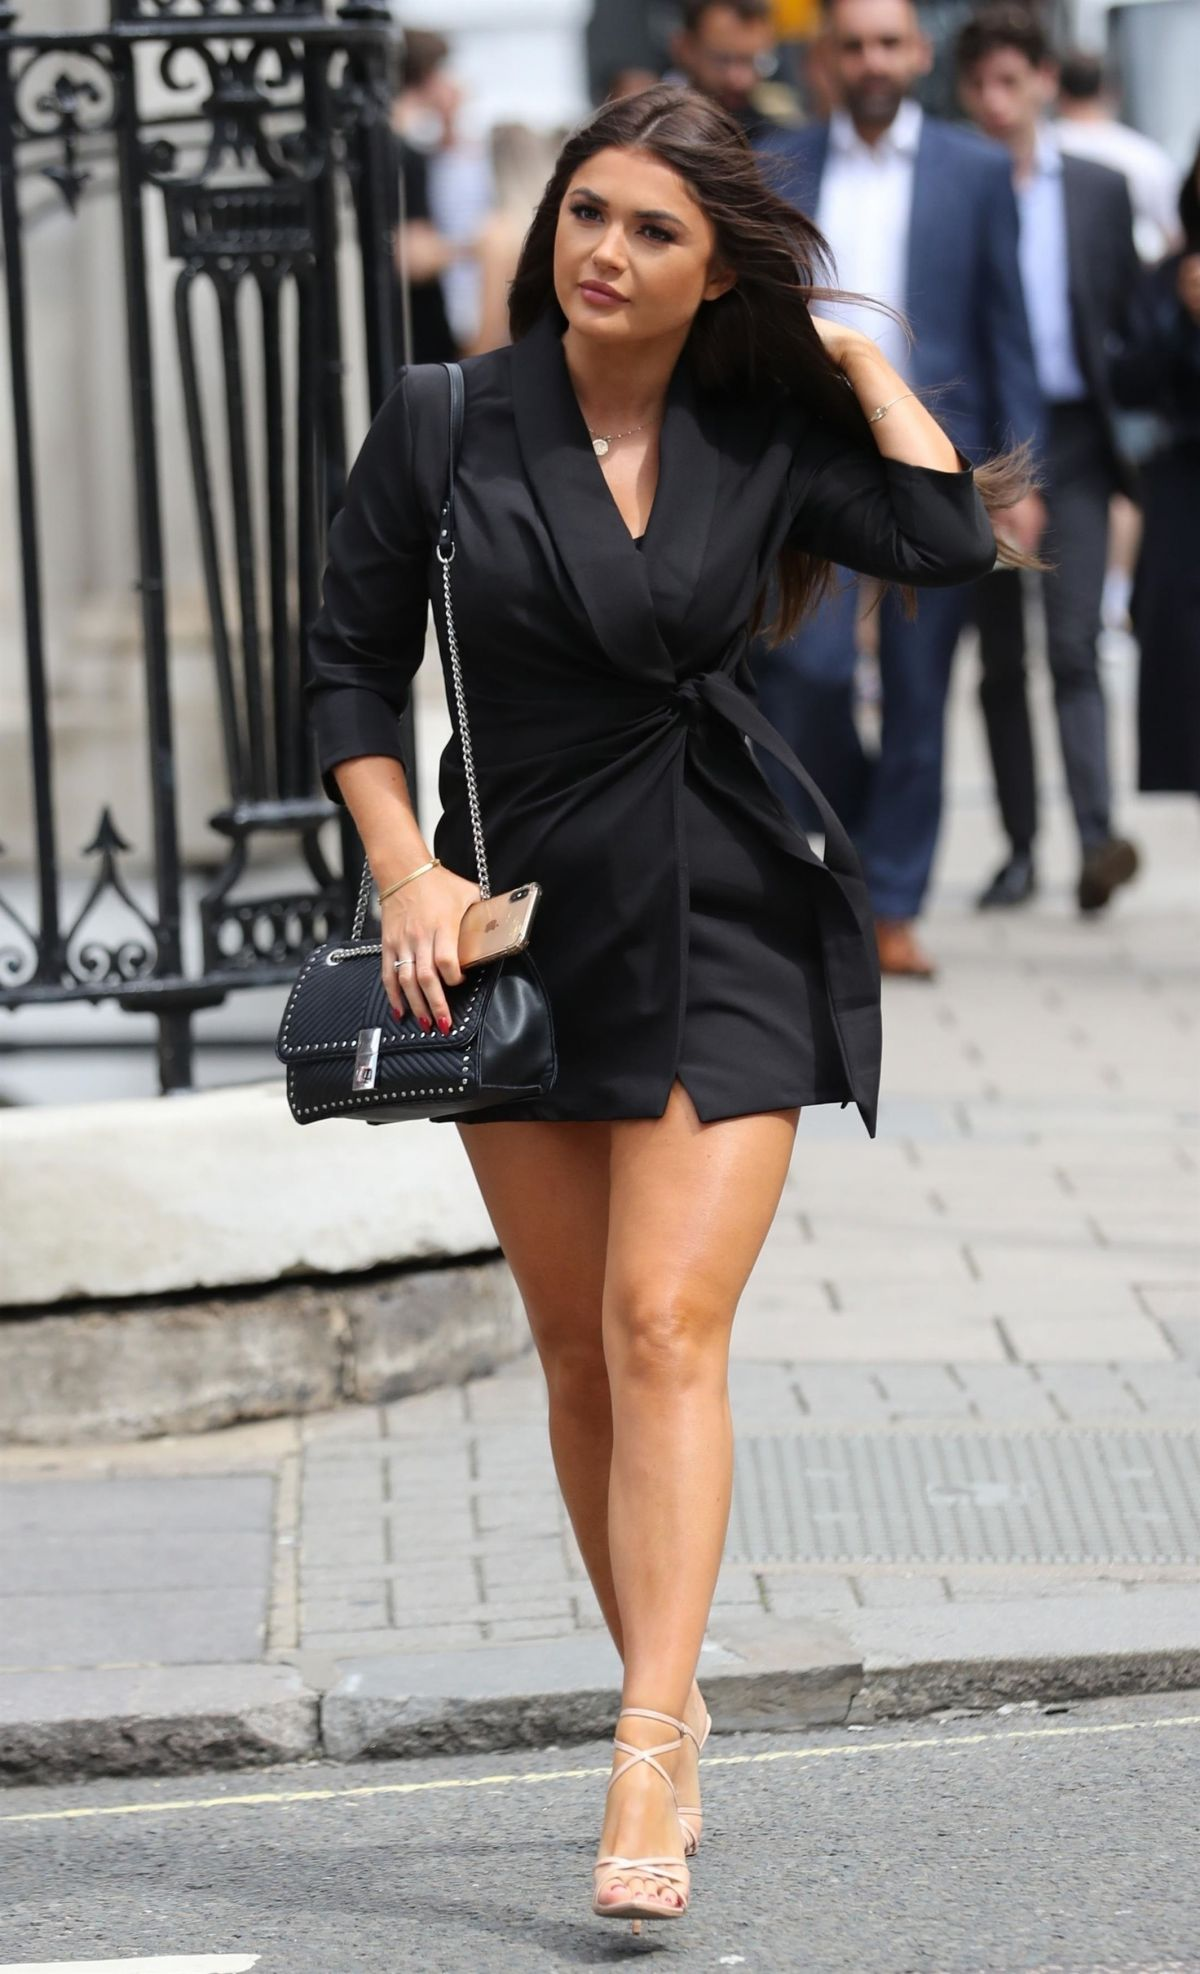 India Reynolds Arrives At Cecconi S Restaurant In London 08 15 2019